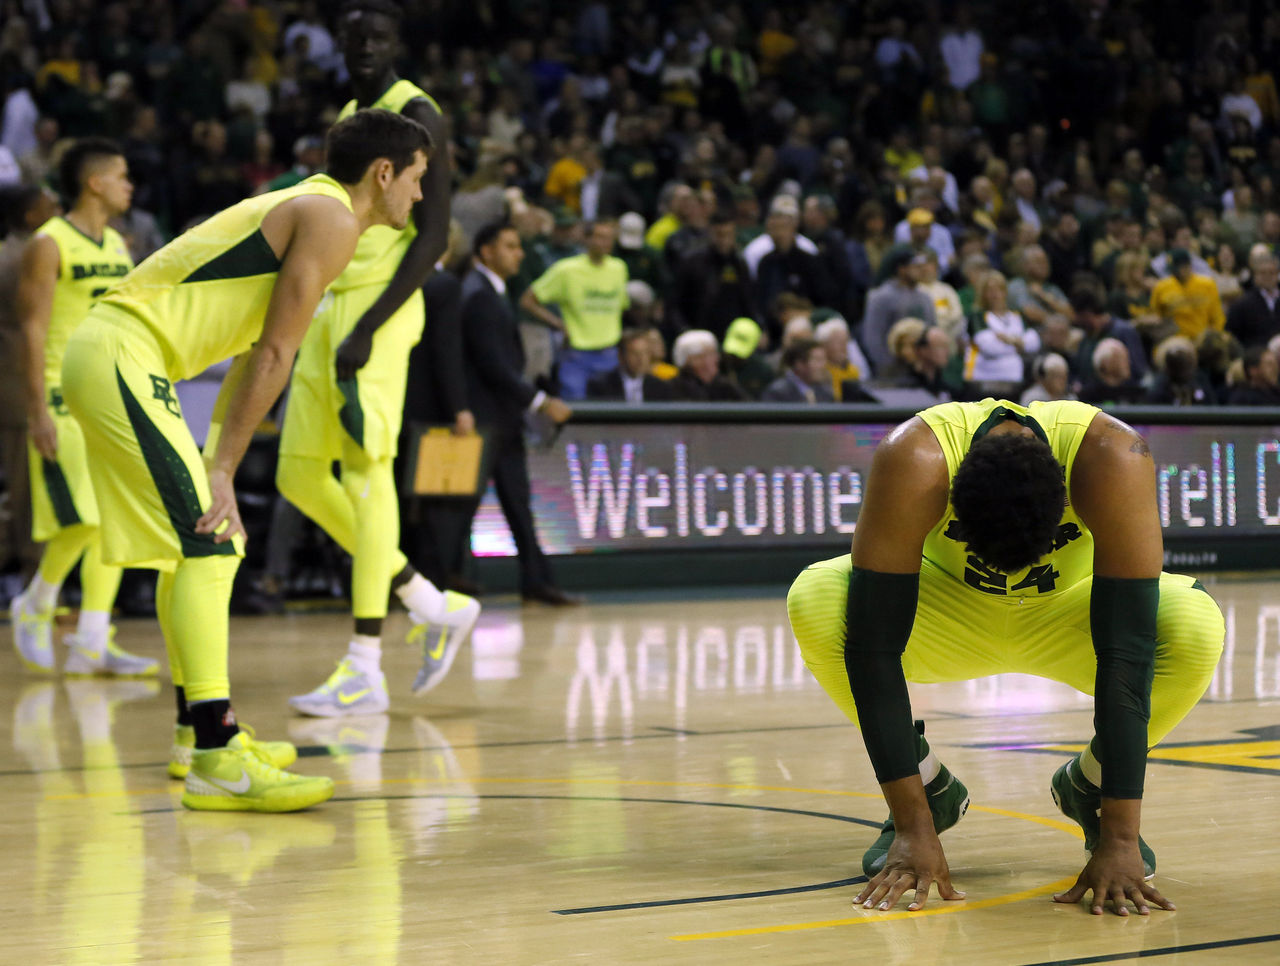 Cropped 2017 02 04t222732z 1063910277 nocid rtrmadp 3 ncaa basketball kansas state at baylor